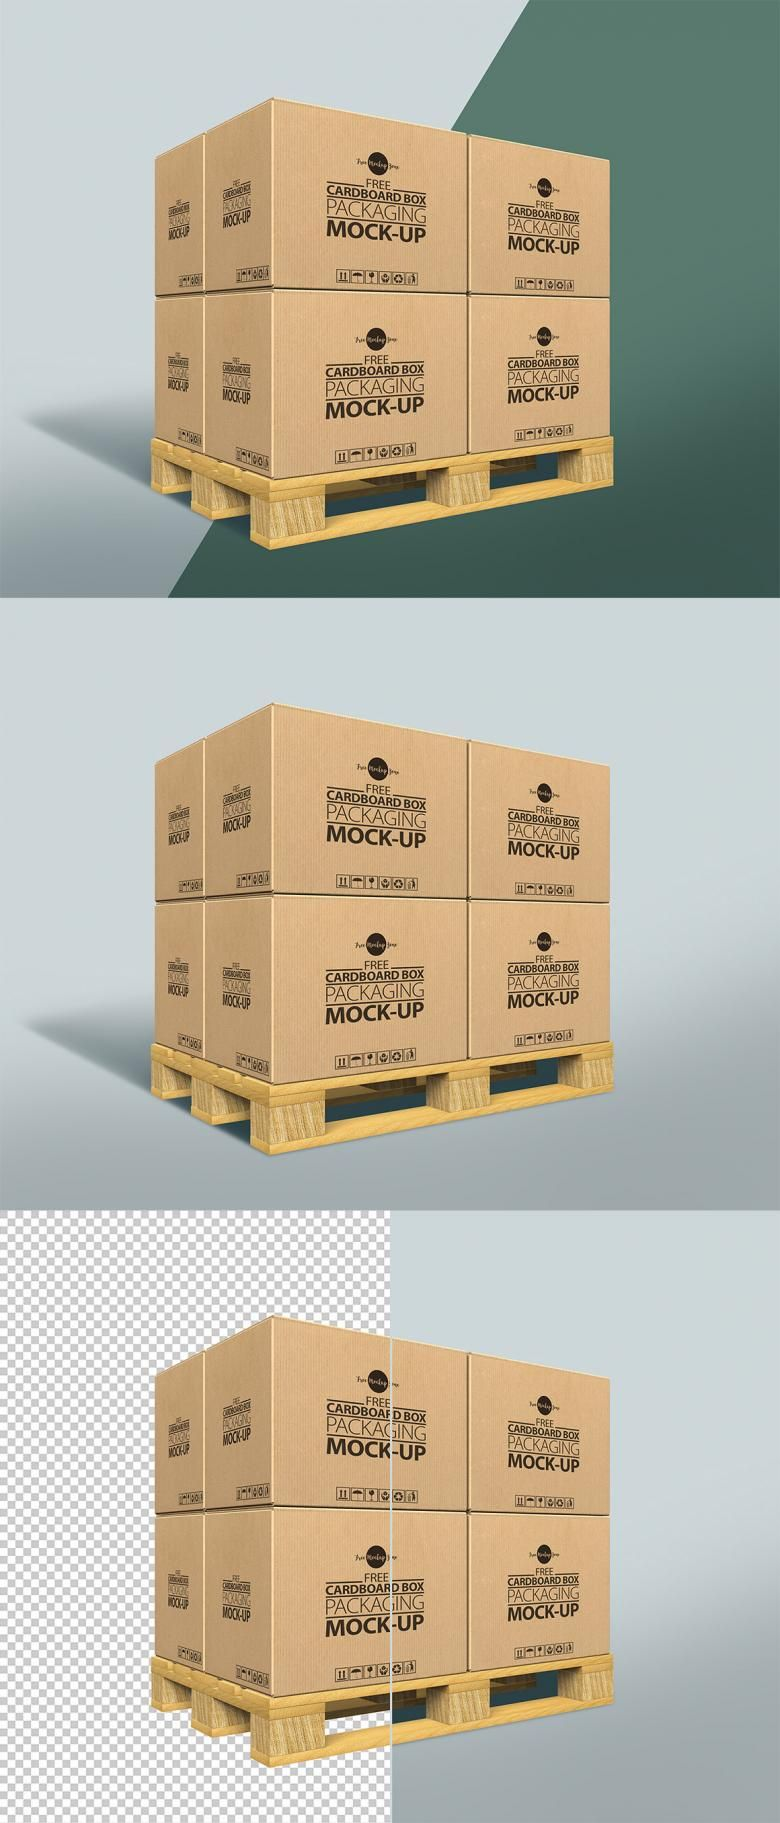 Download Free Cardboard Boxes On A Pallet Mockup Design Mockup Free Cardboard Box Cardboard